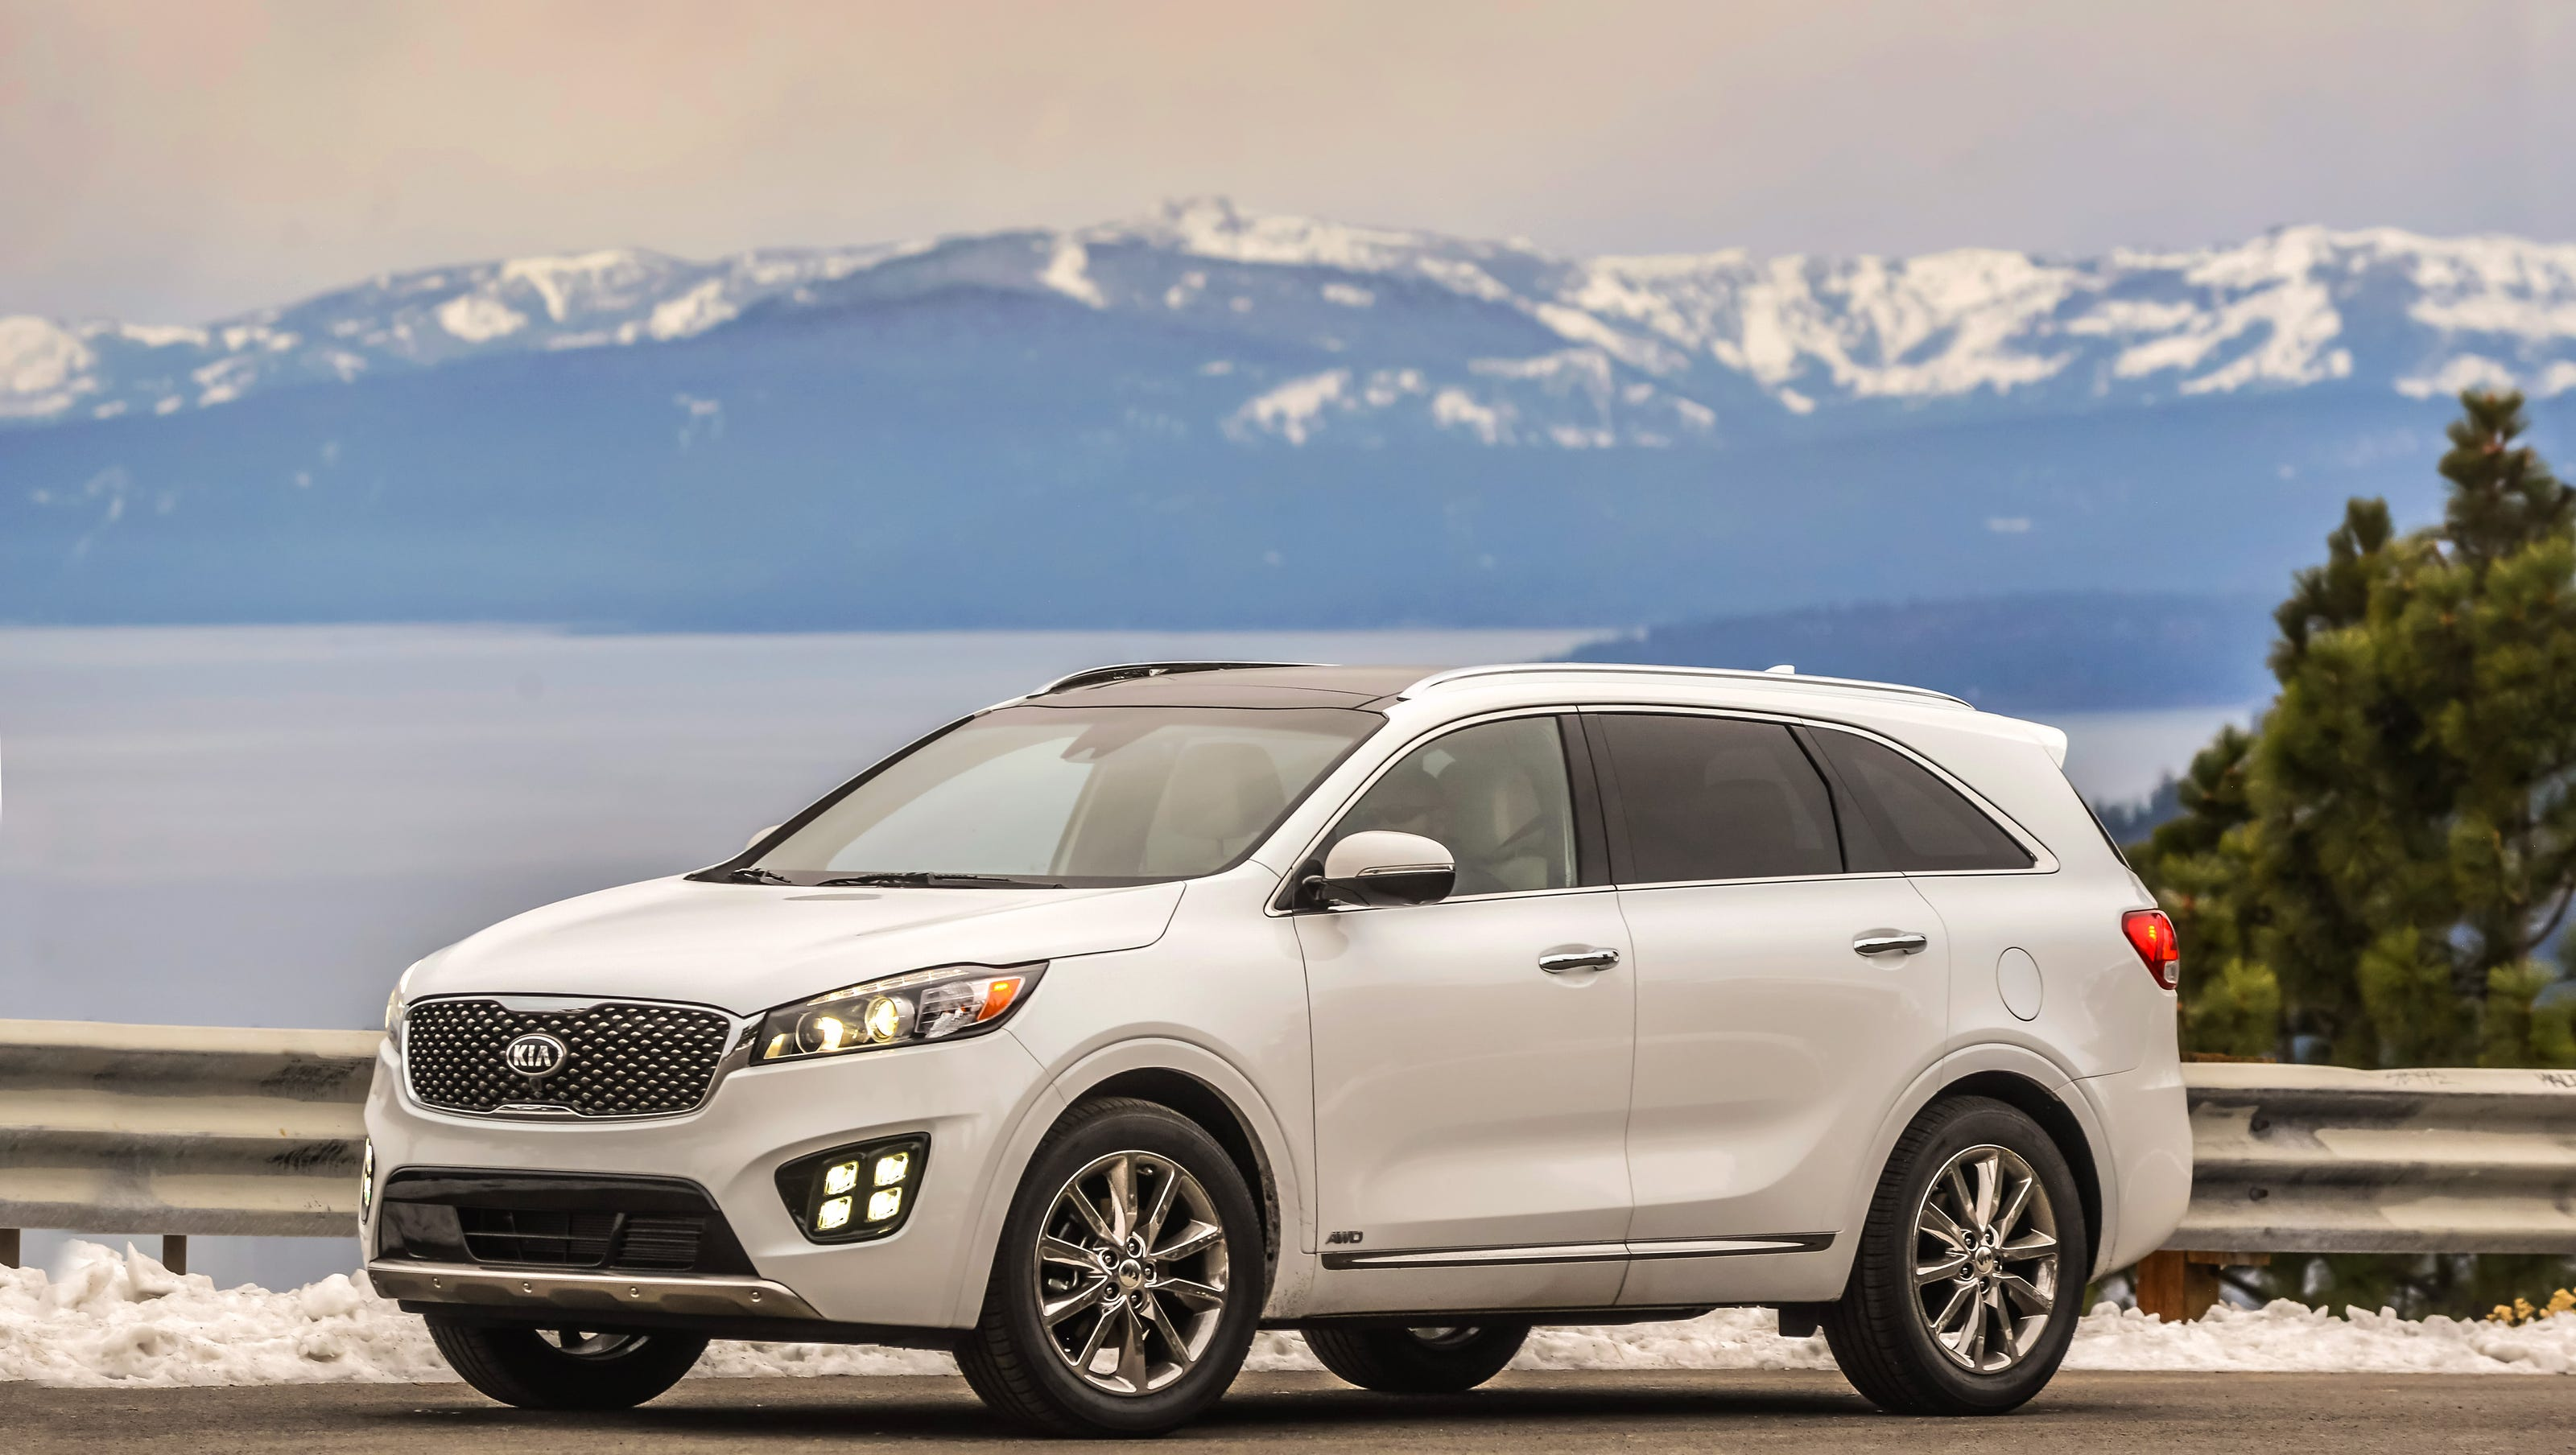 2016 Kia Sorento approaches luxury with lavish features and style